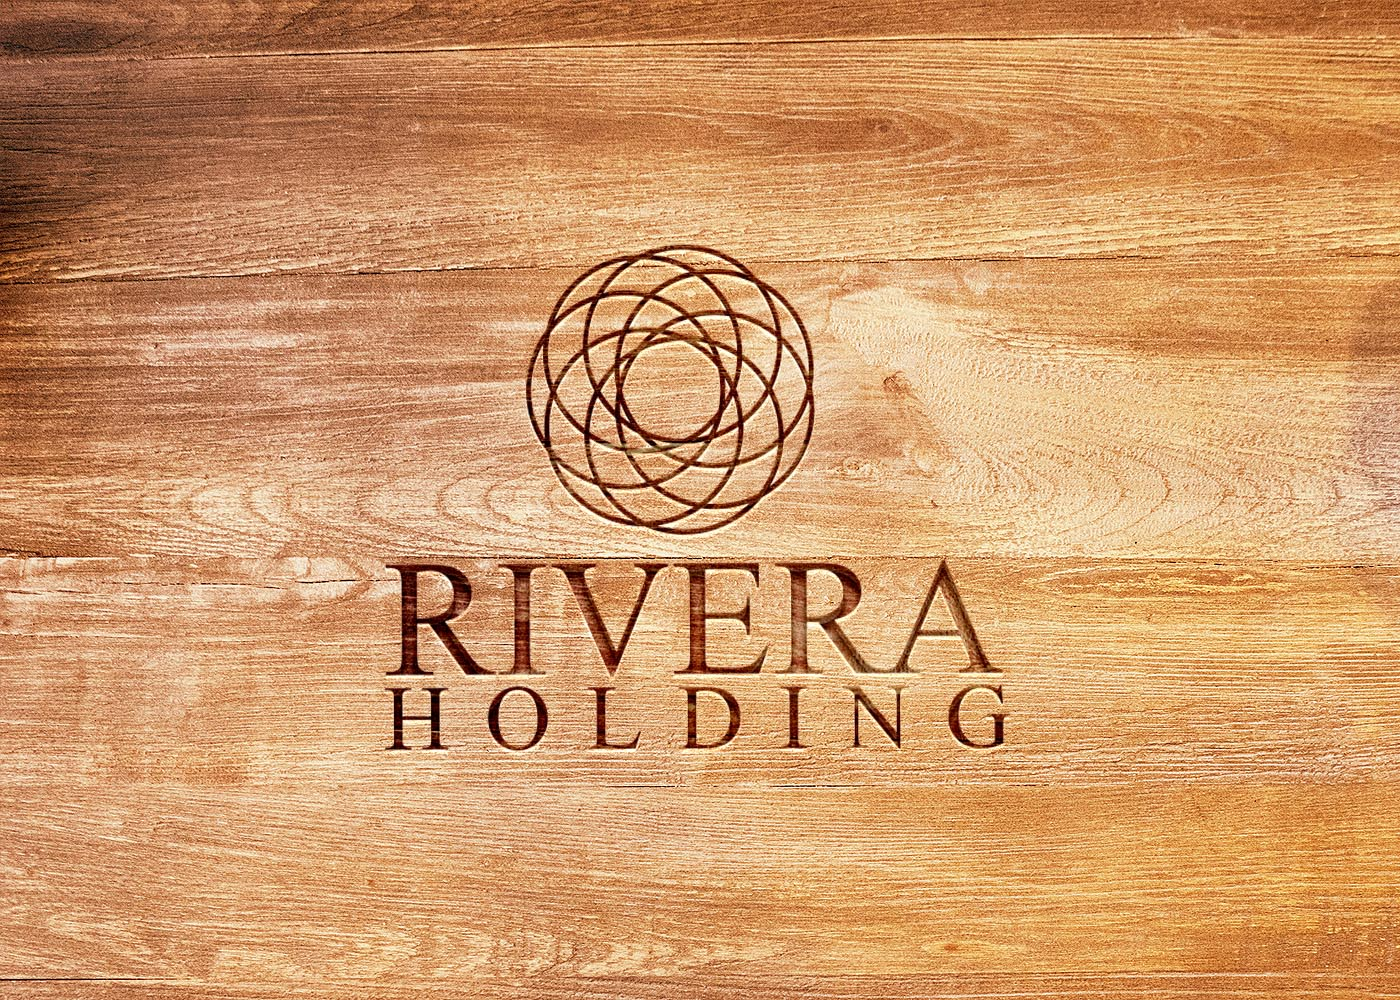 Logo Design by Tauhedul Islam - Entry No. 124 in the Logo Design Contest RIVERA HOLDING Logo Design.